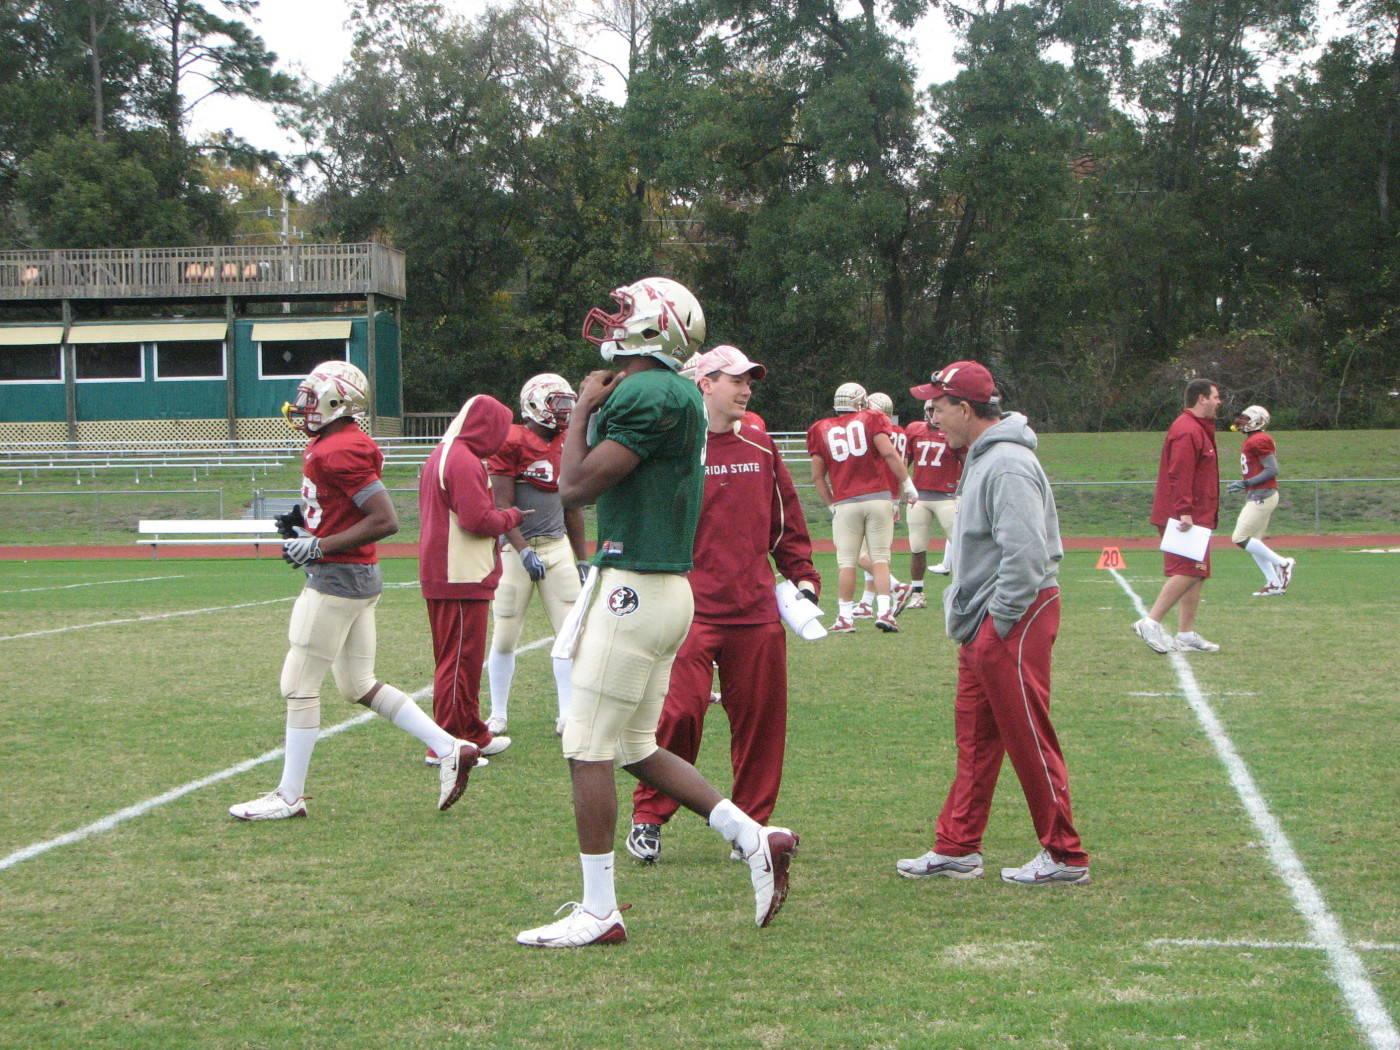 Gator Bowl Practice December 28th